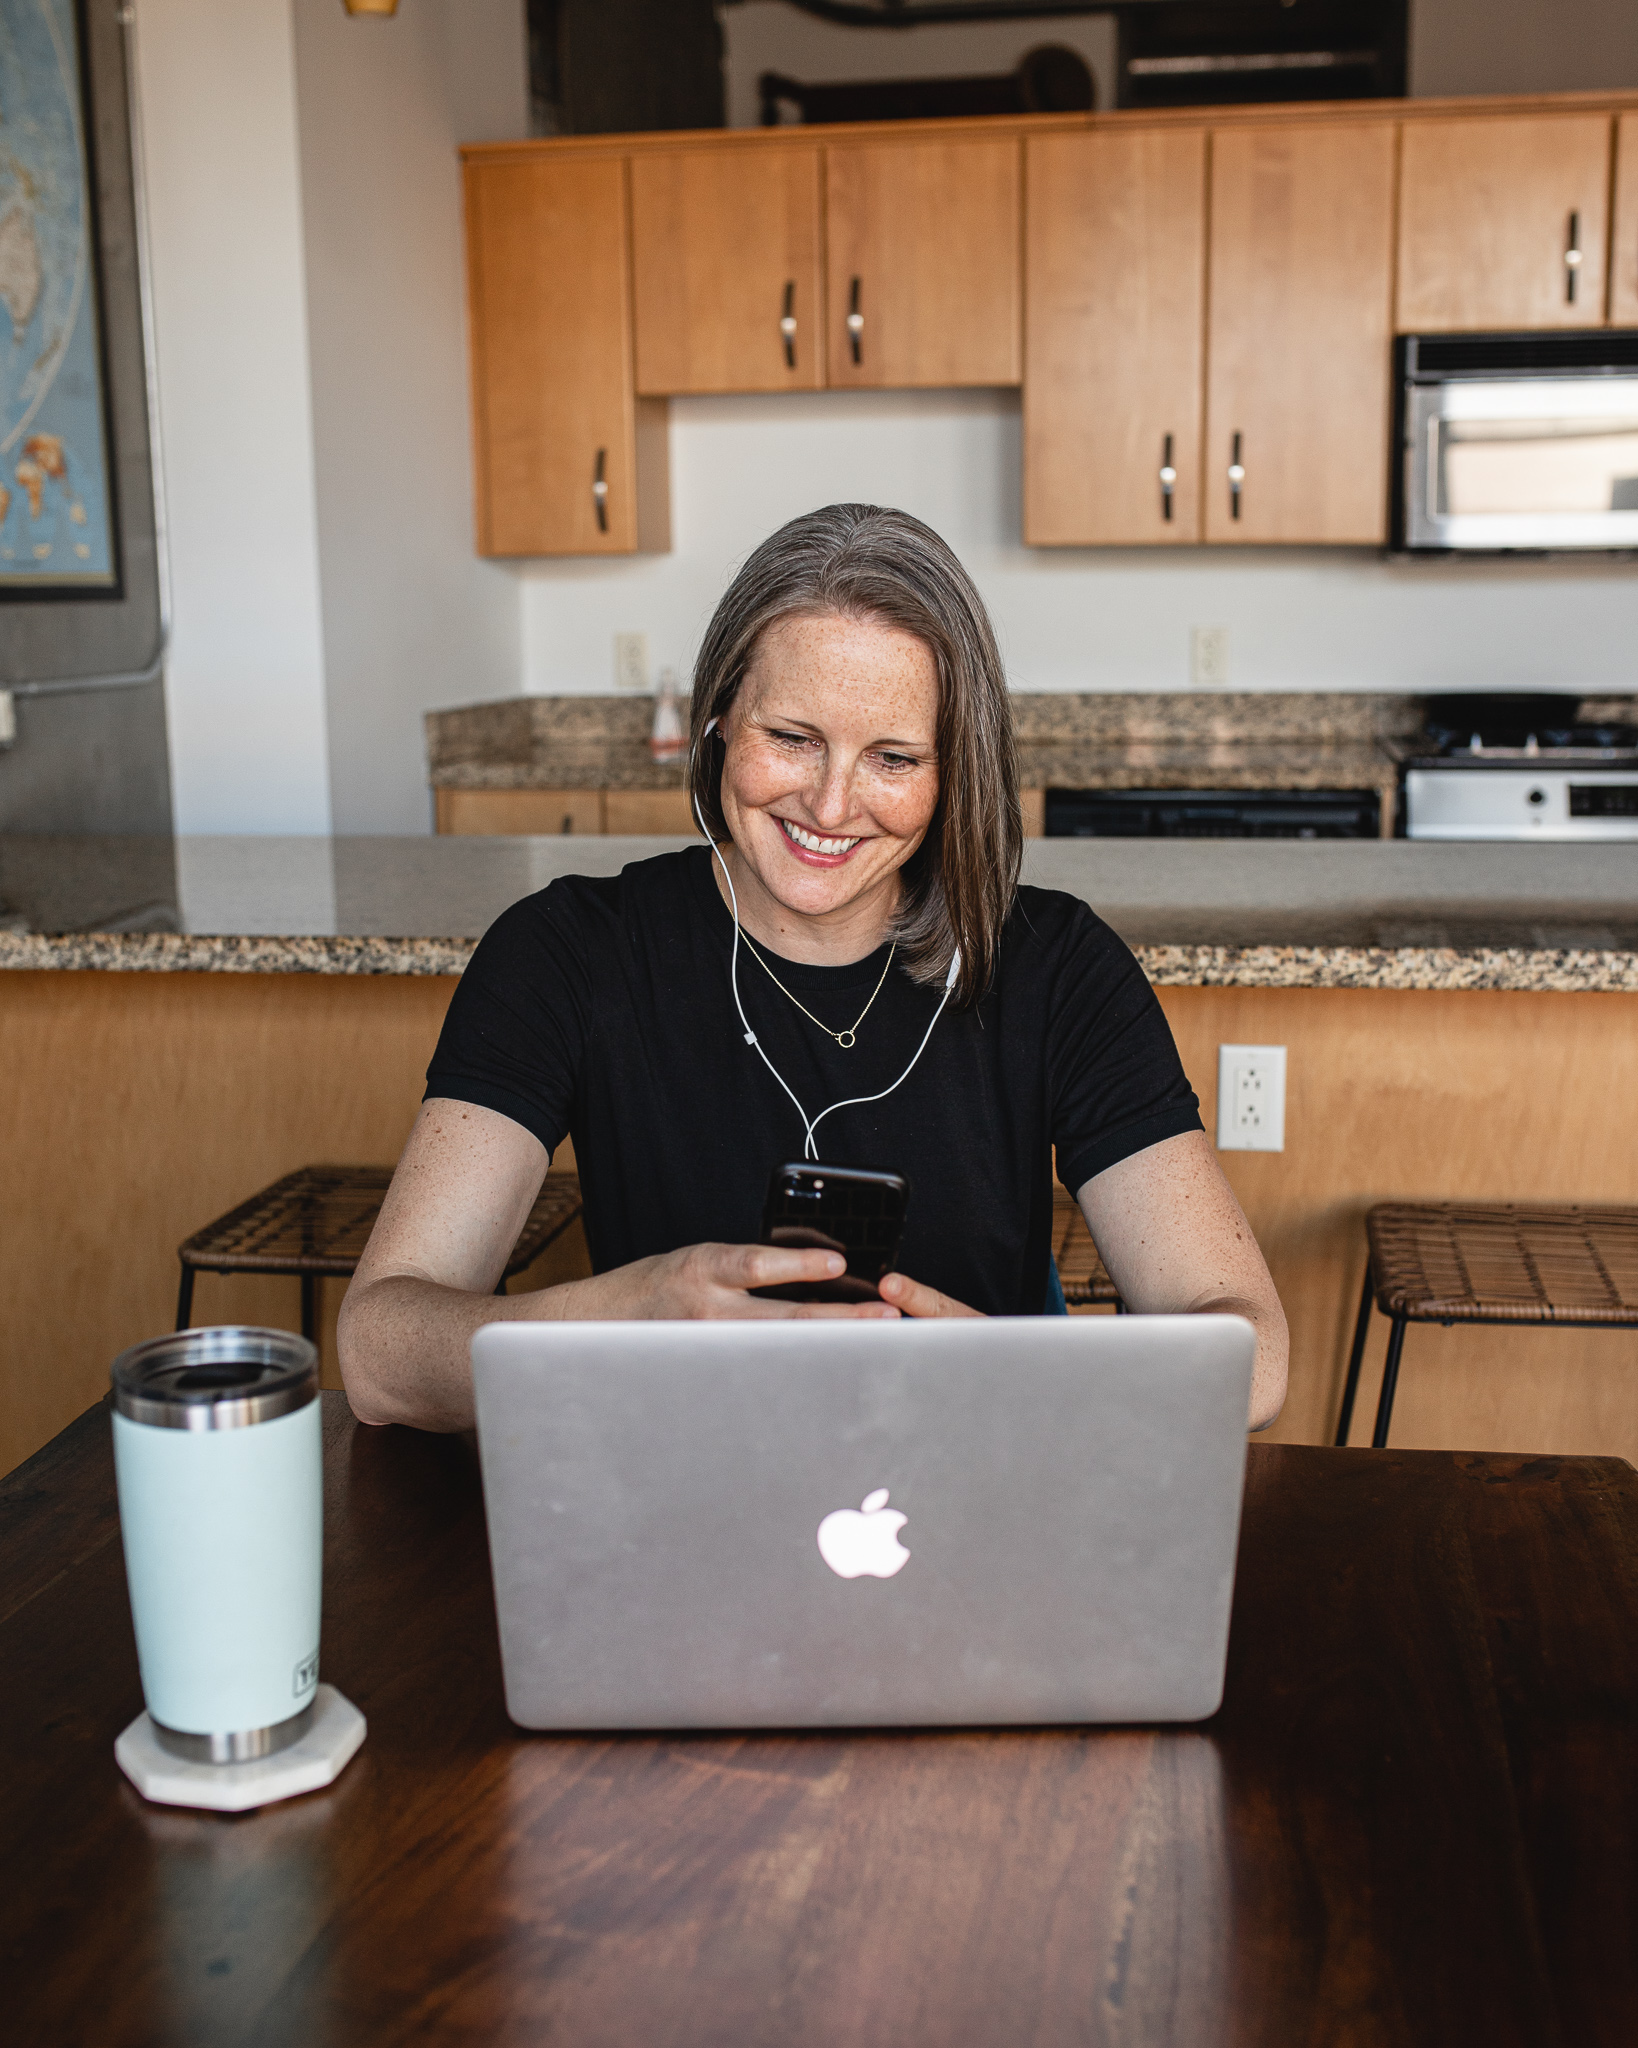 Brooke Simonson, Nutritionist, researching at her desk